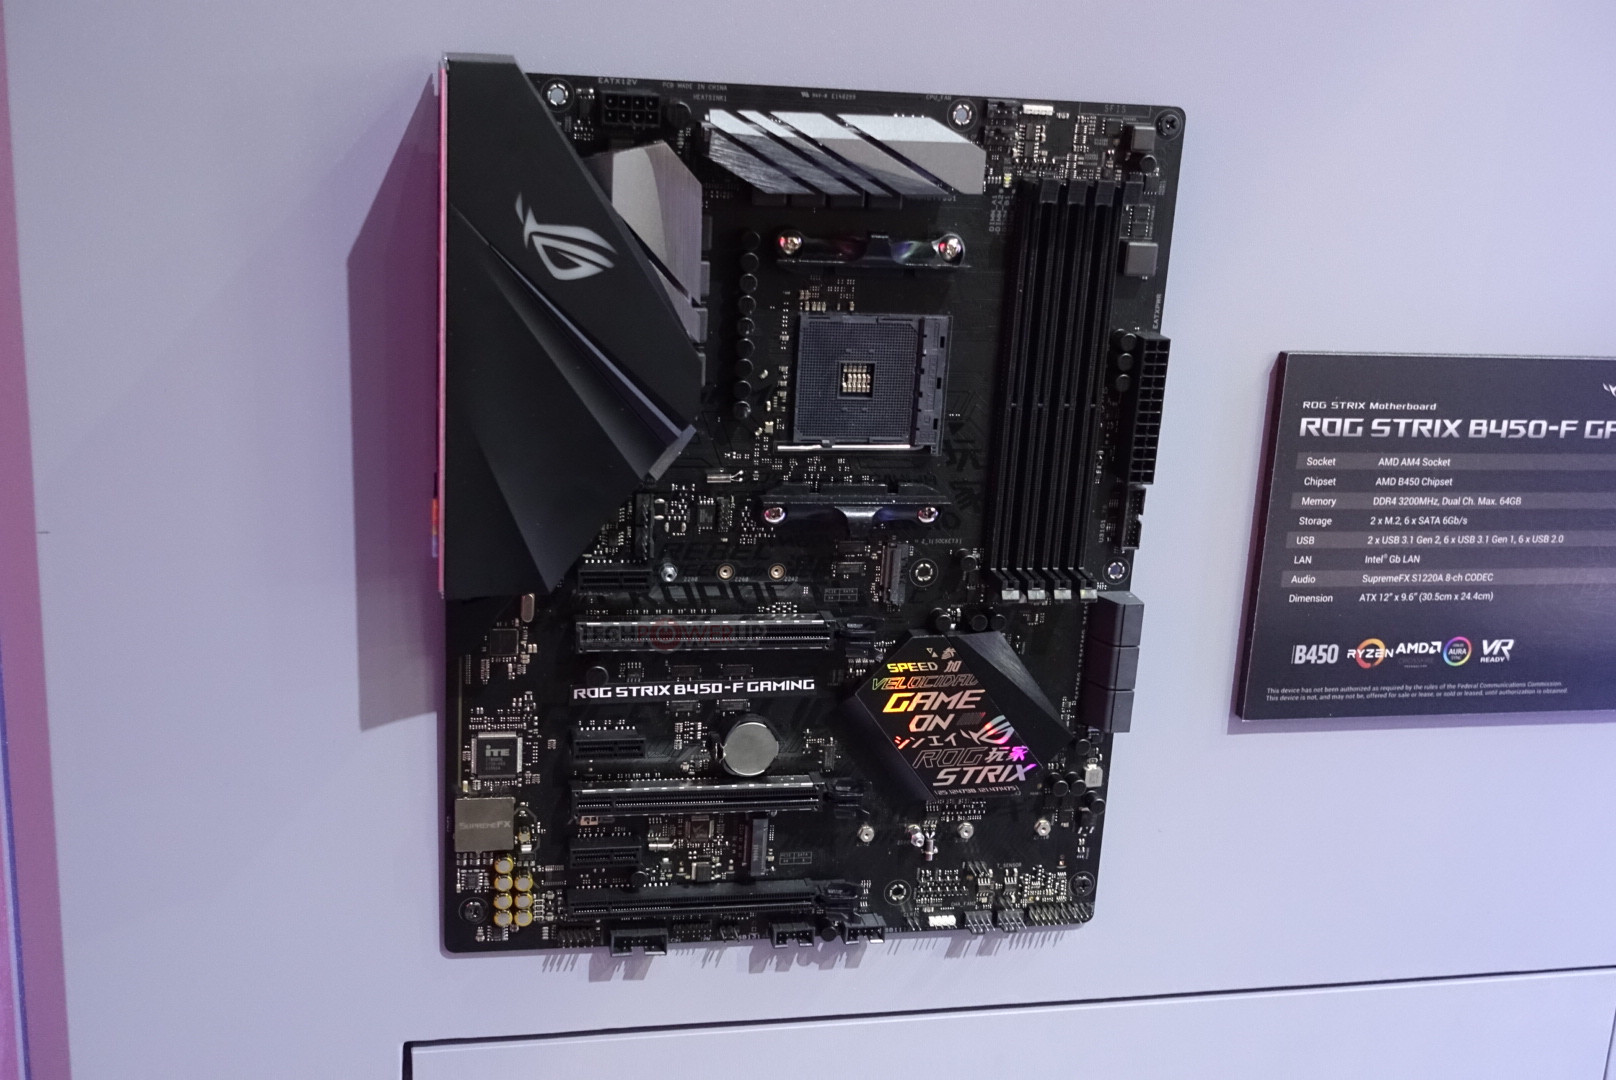 ASUS ROG Strix B450-F Gaming Motherboard Pictured | TechPowerUp